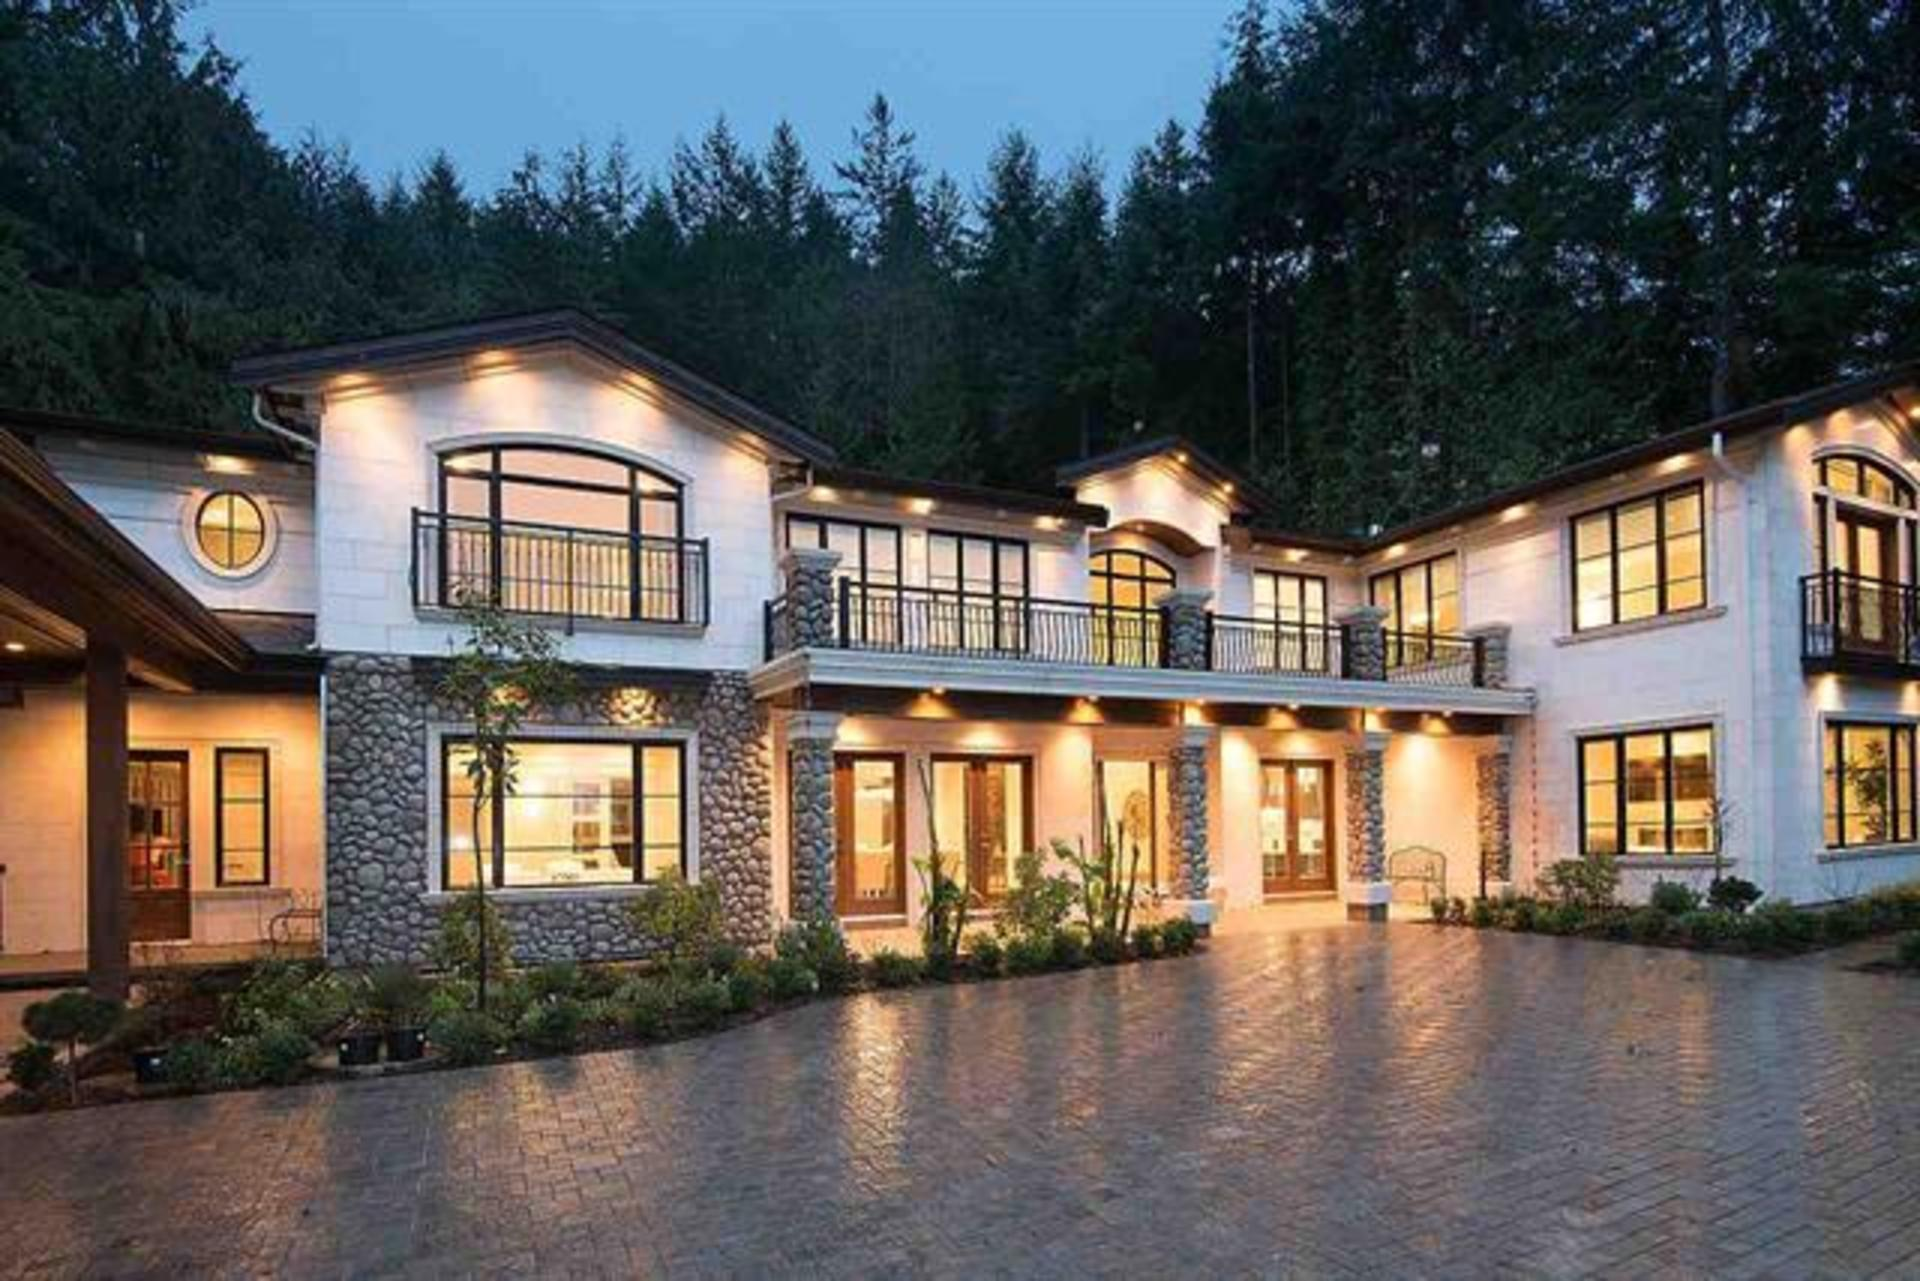 262048596-1 at 4560 Woodgreen Drive, Cypress Park Estates, West Vancouver